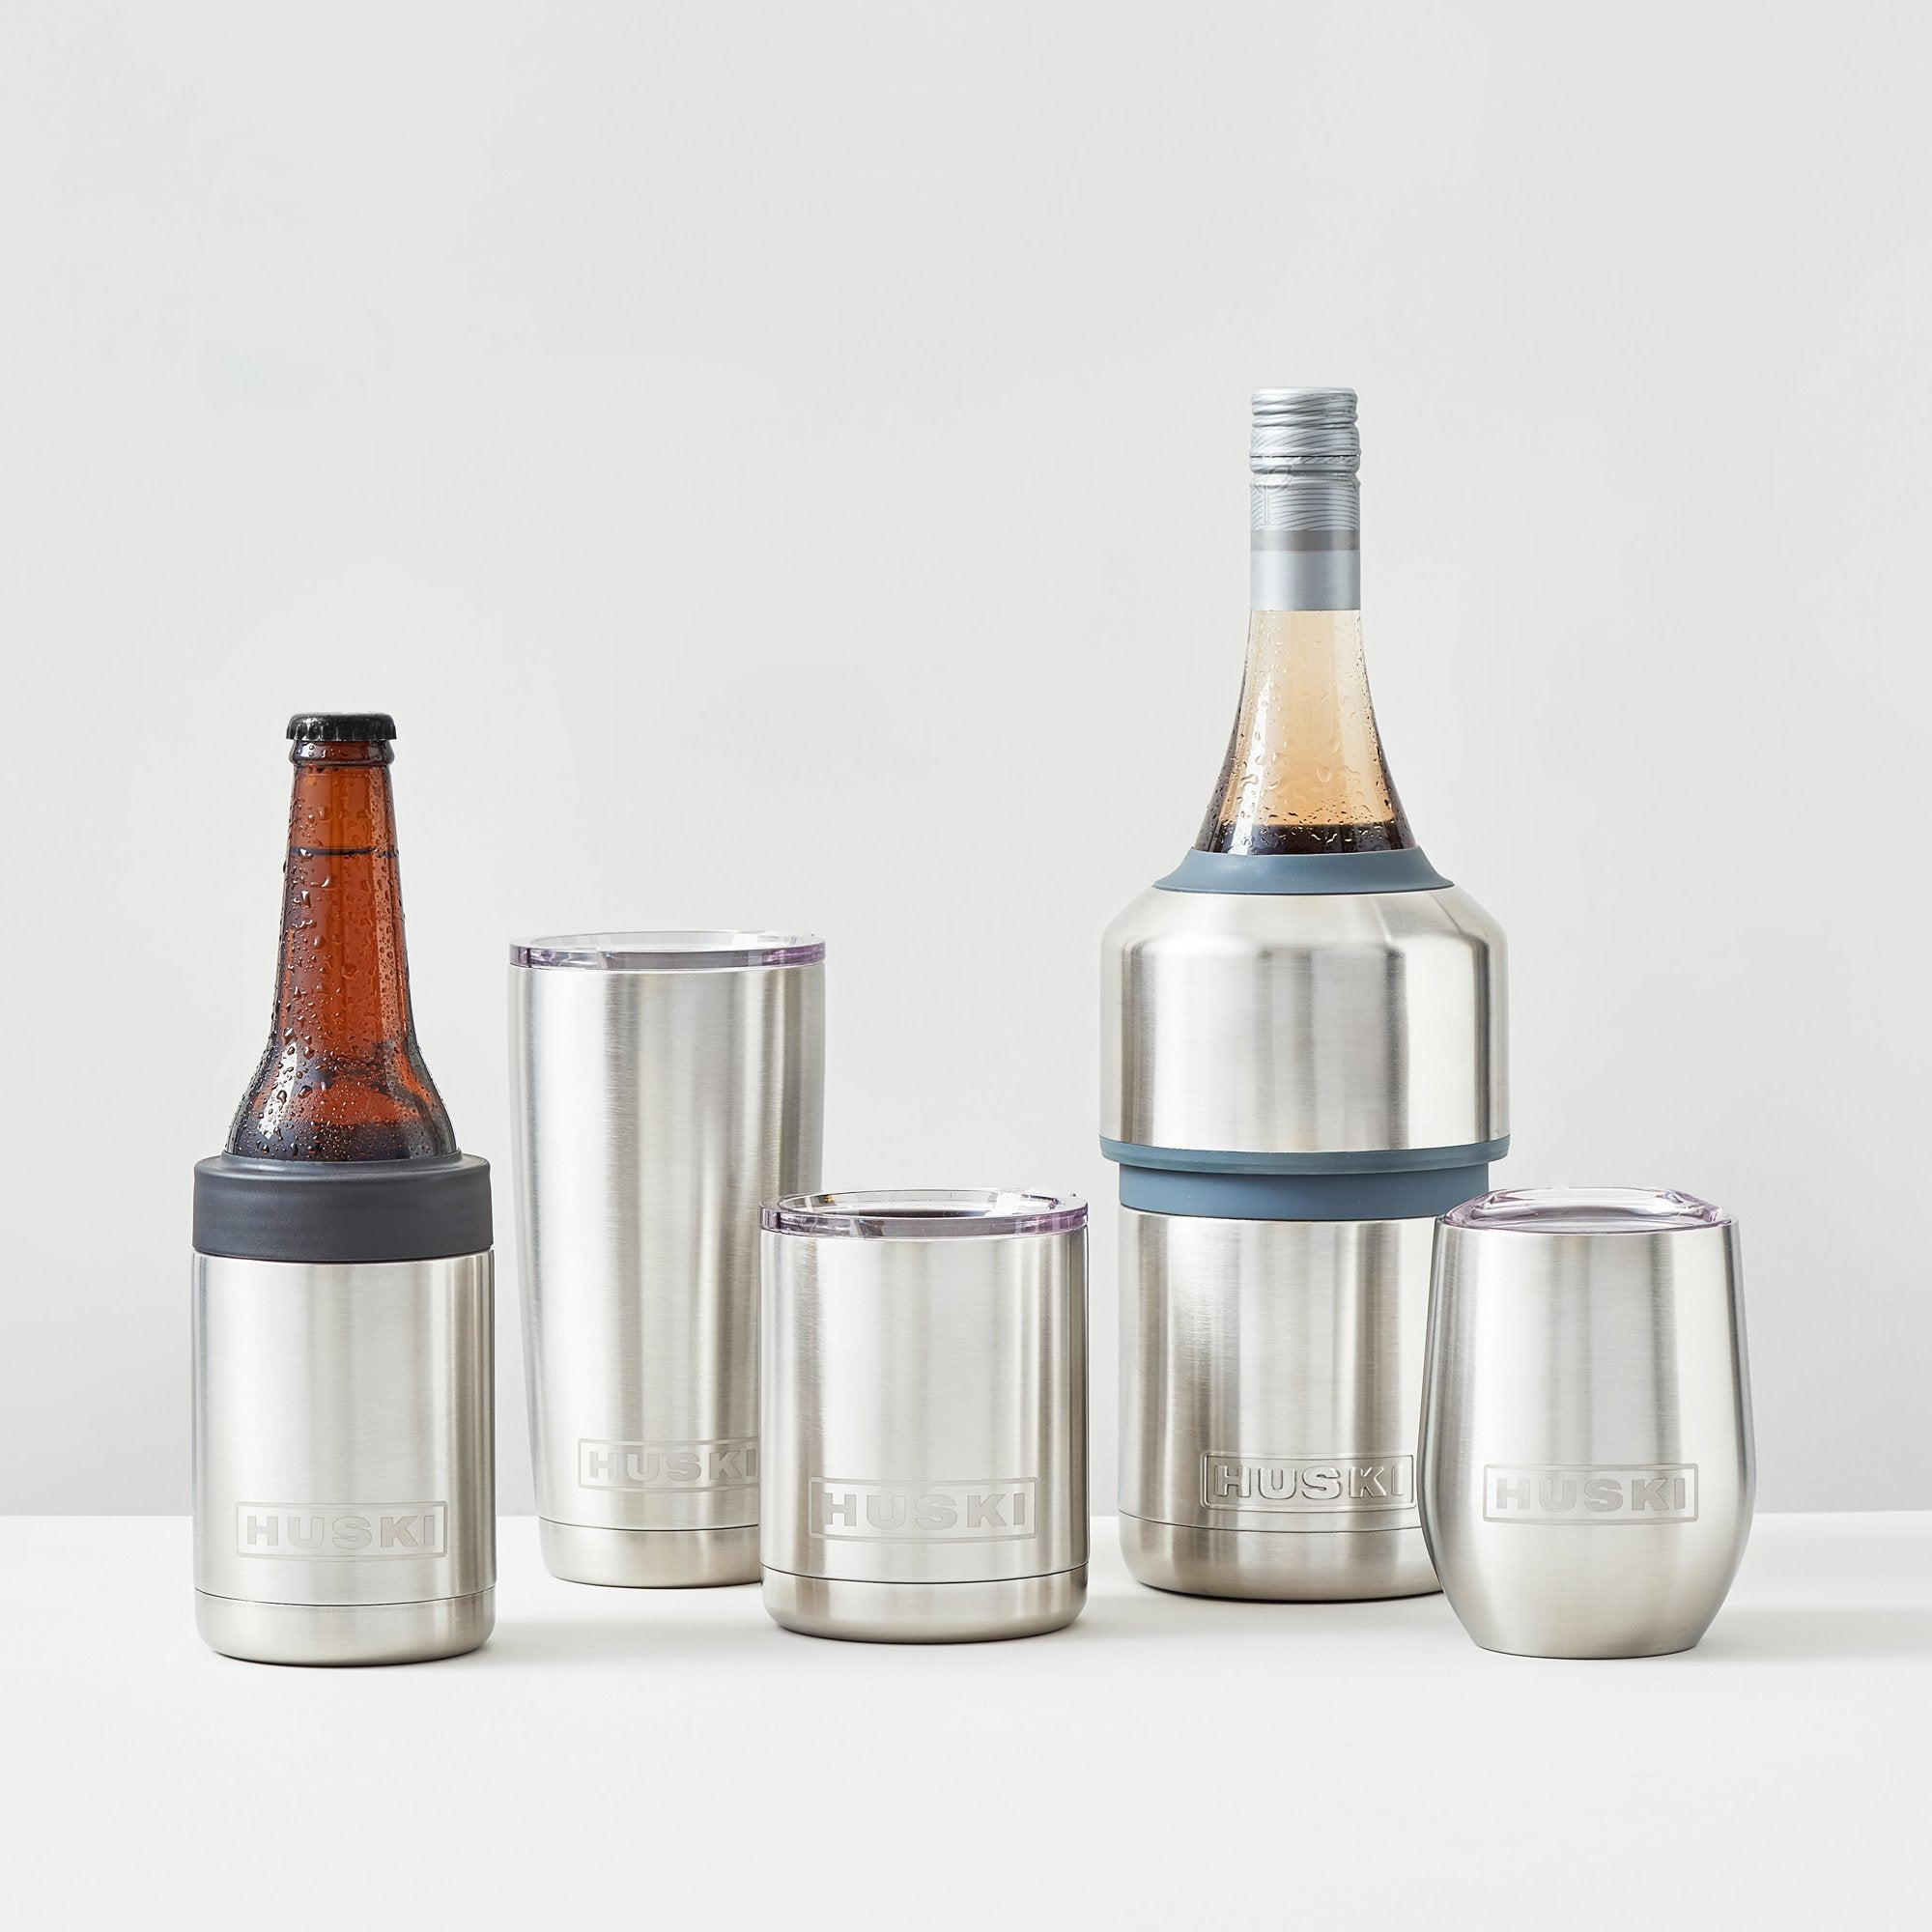 HUSKI - Wine Tumbler Brushed Stainless